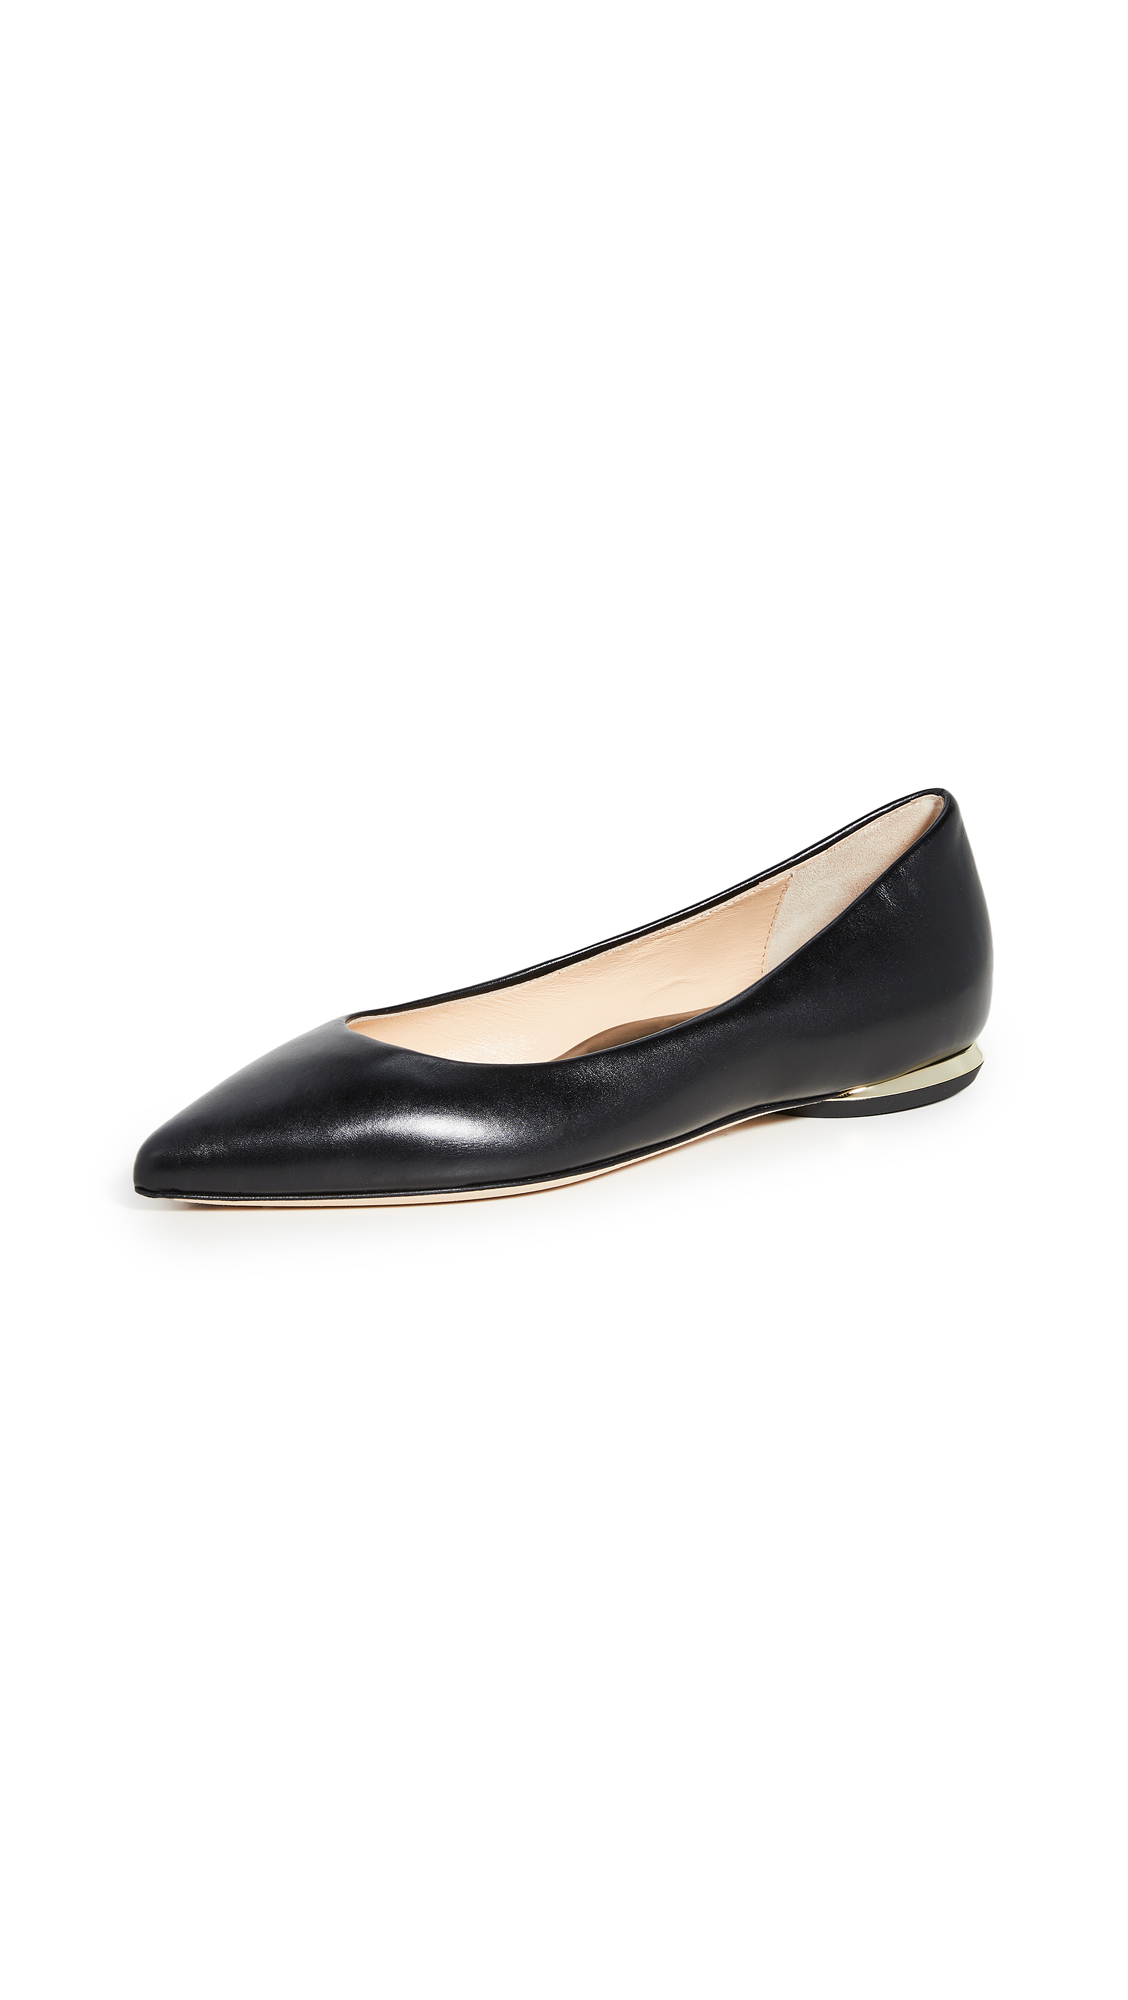 Buy Marion Parke Must Have Flats online, shop Marion Parke